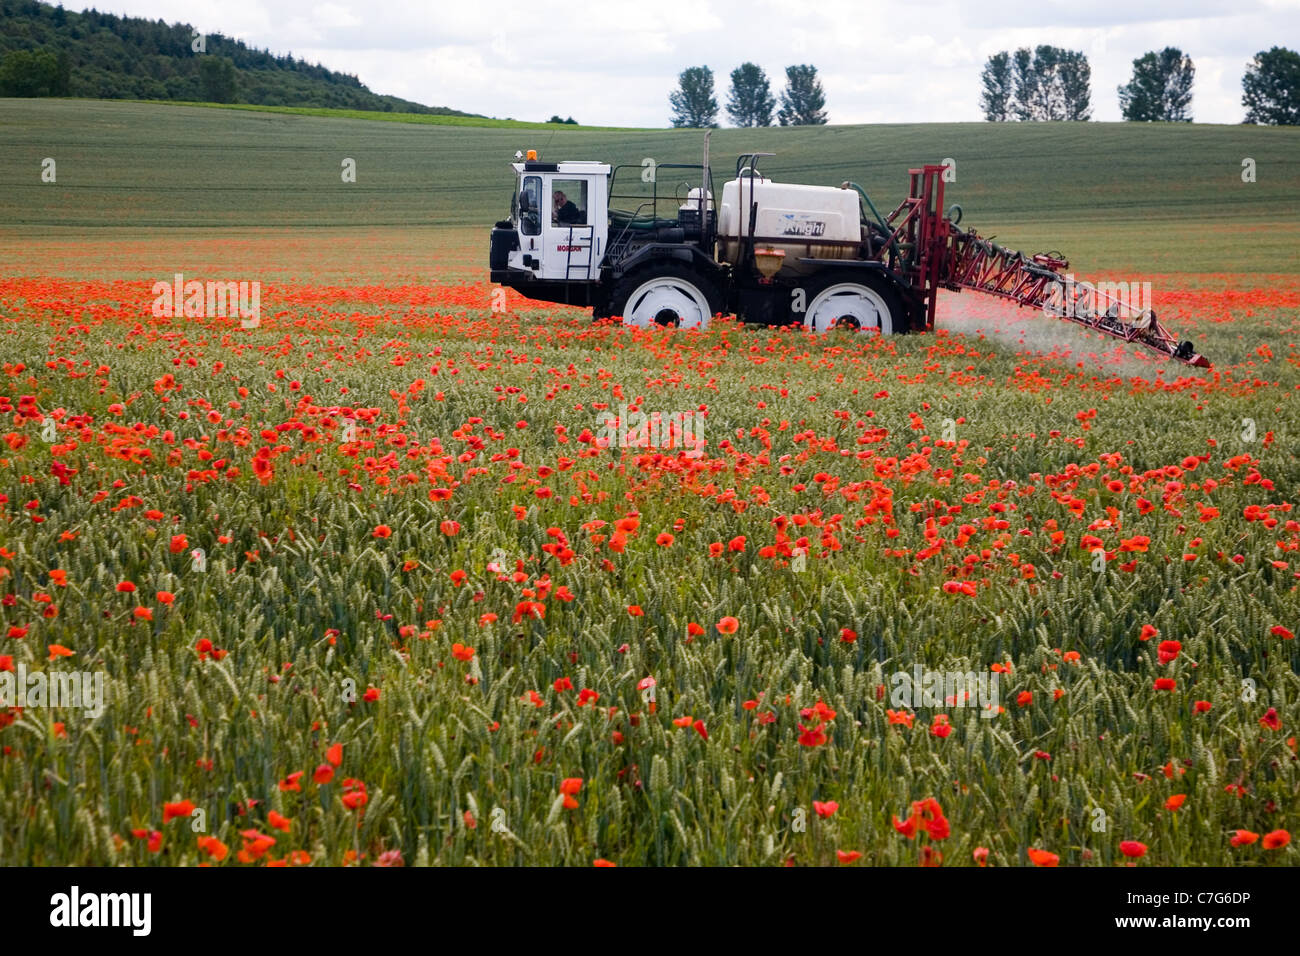 Crop spraying in July in a field of poppies in Yorkshire - Stock Image